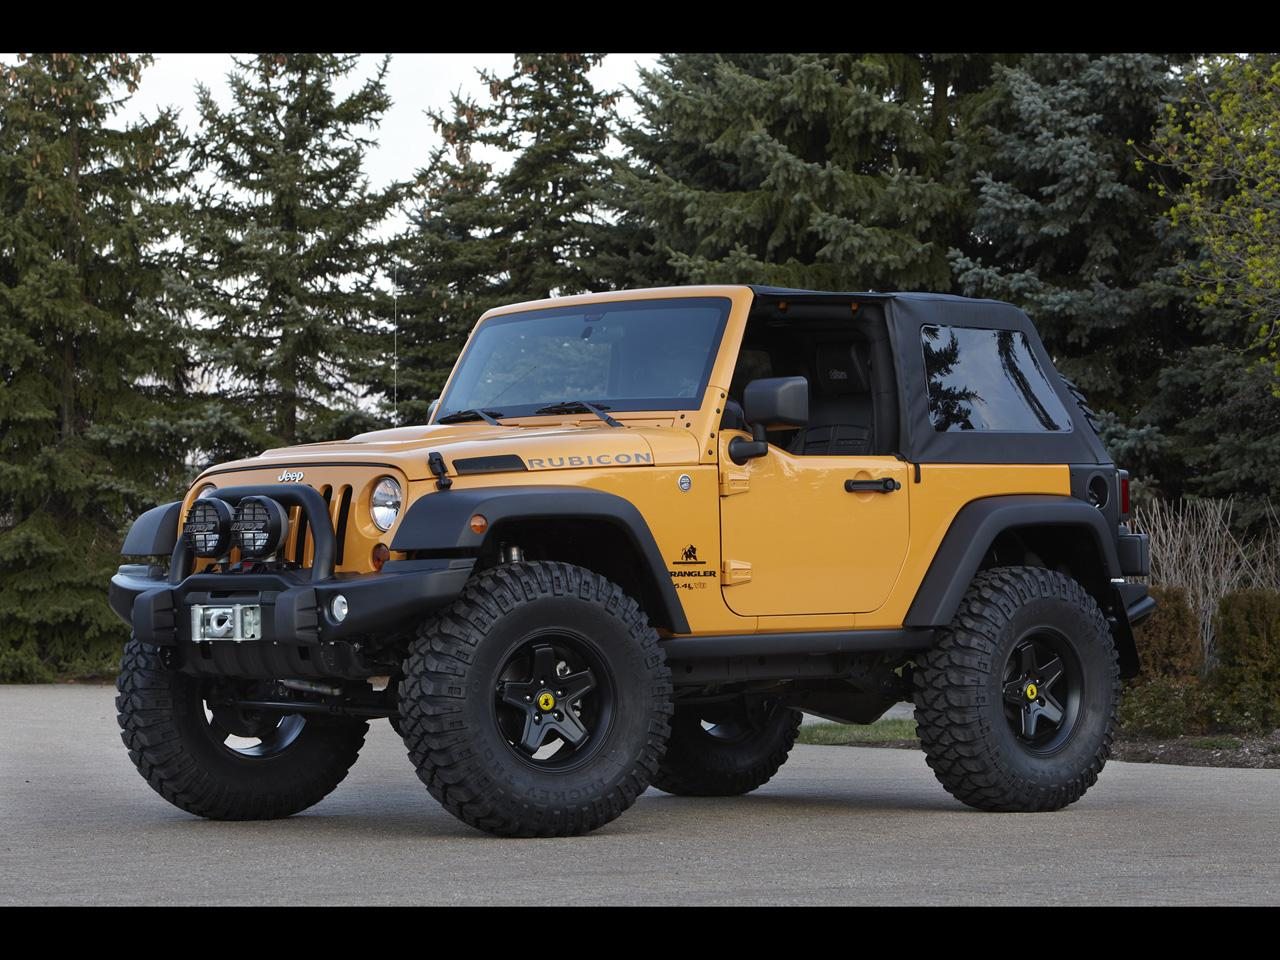 2012 Jeep Moab Easter Safari Concepts - Jeep Wrangler Traildozer - 1280x960 - Wallpaper